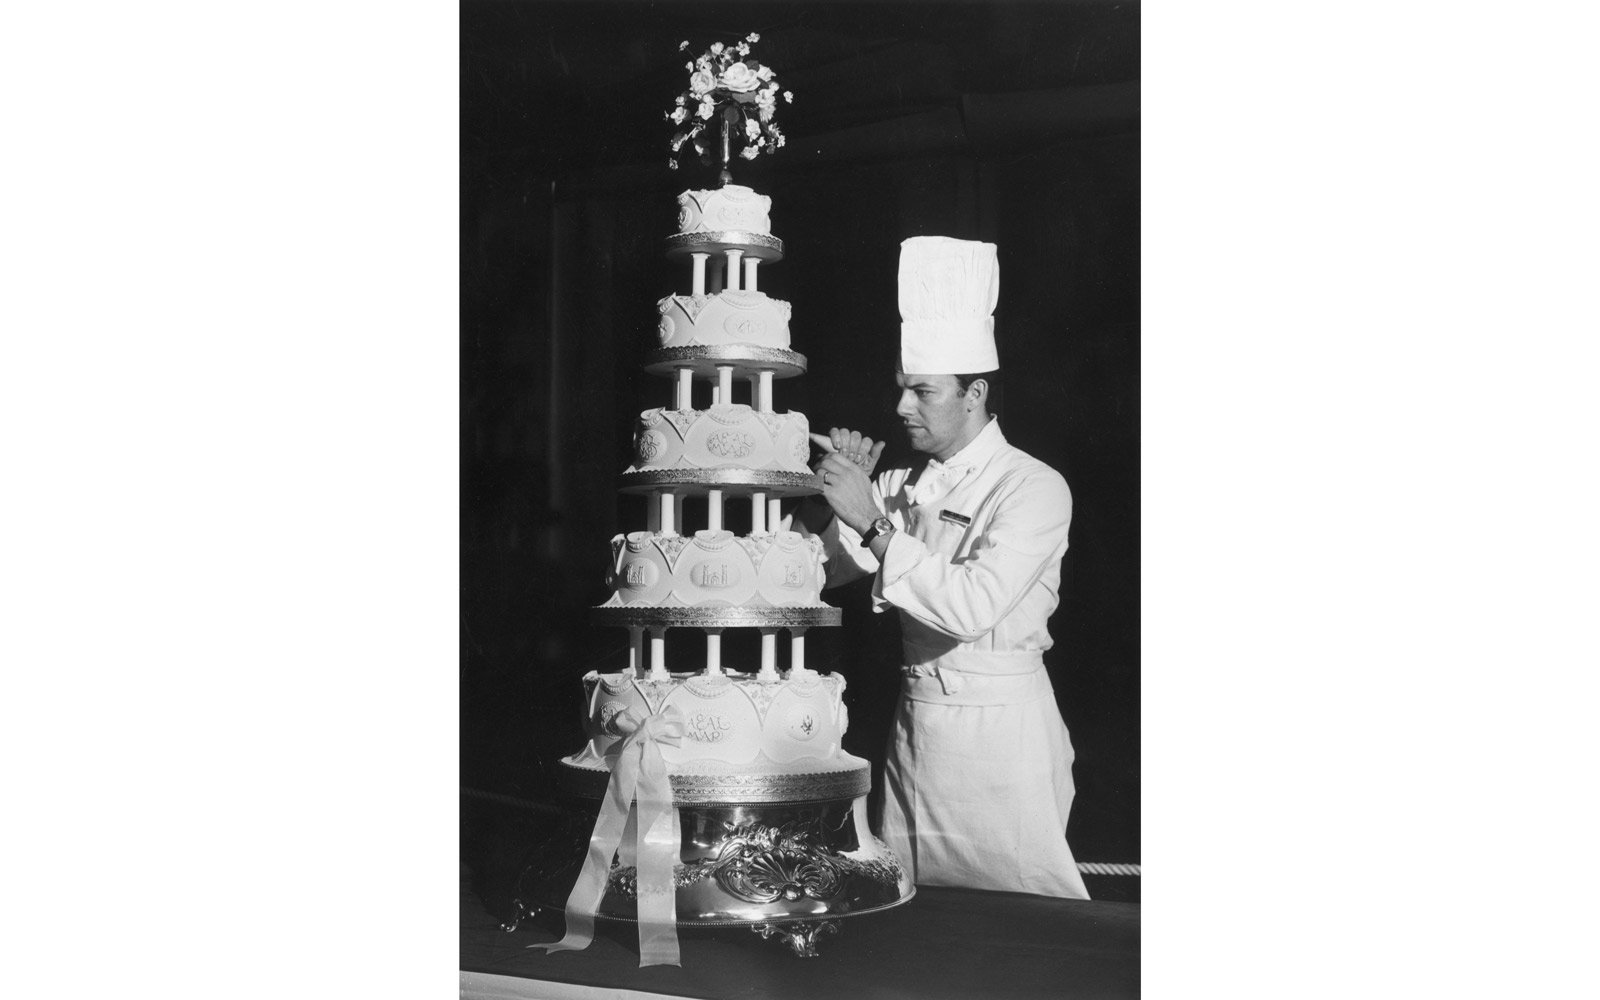 Sergeant Major David Dodd of the Army Catering Corps putting the finishing touches to the wedding cake for the wedding of Princess Anne and Captain Mark Phillips